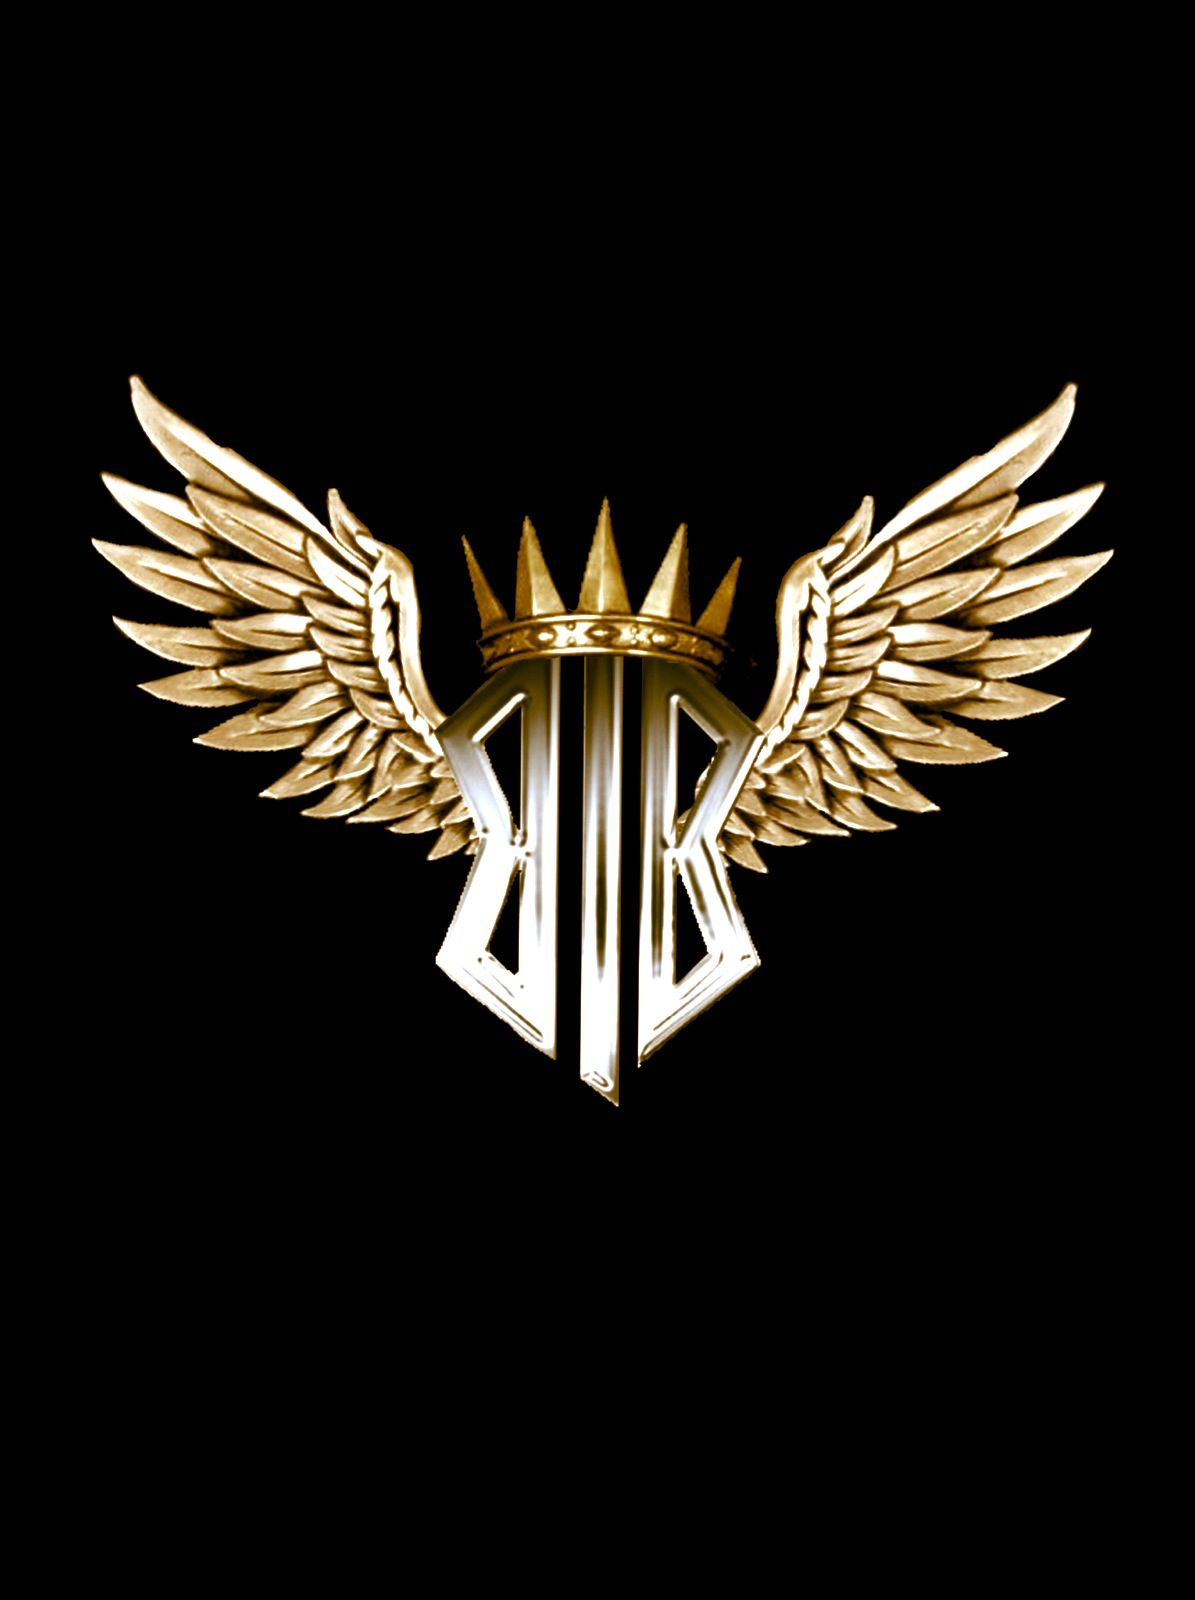 Winged logo.